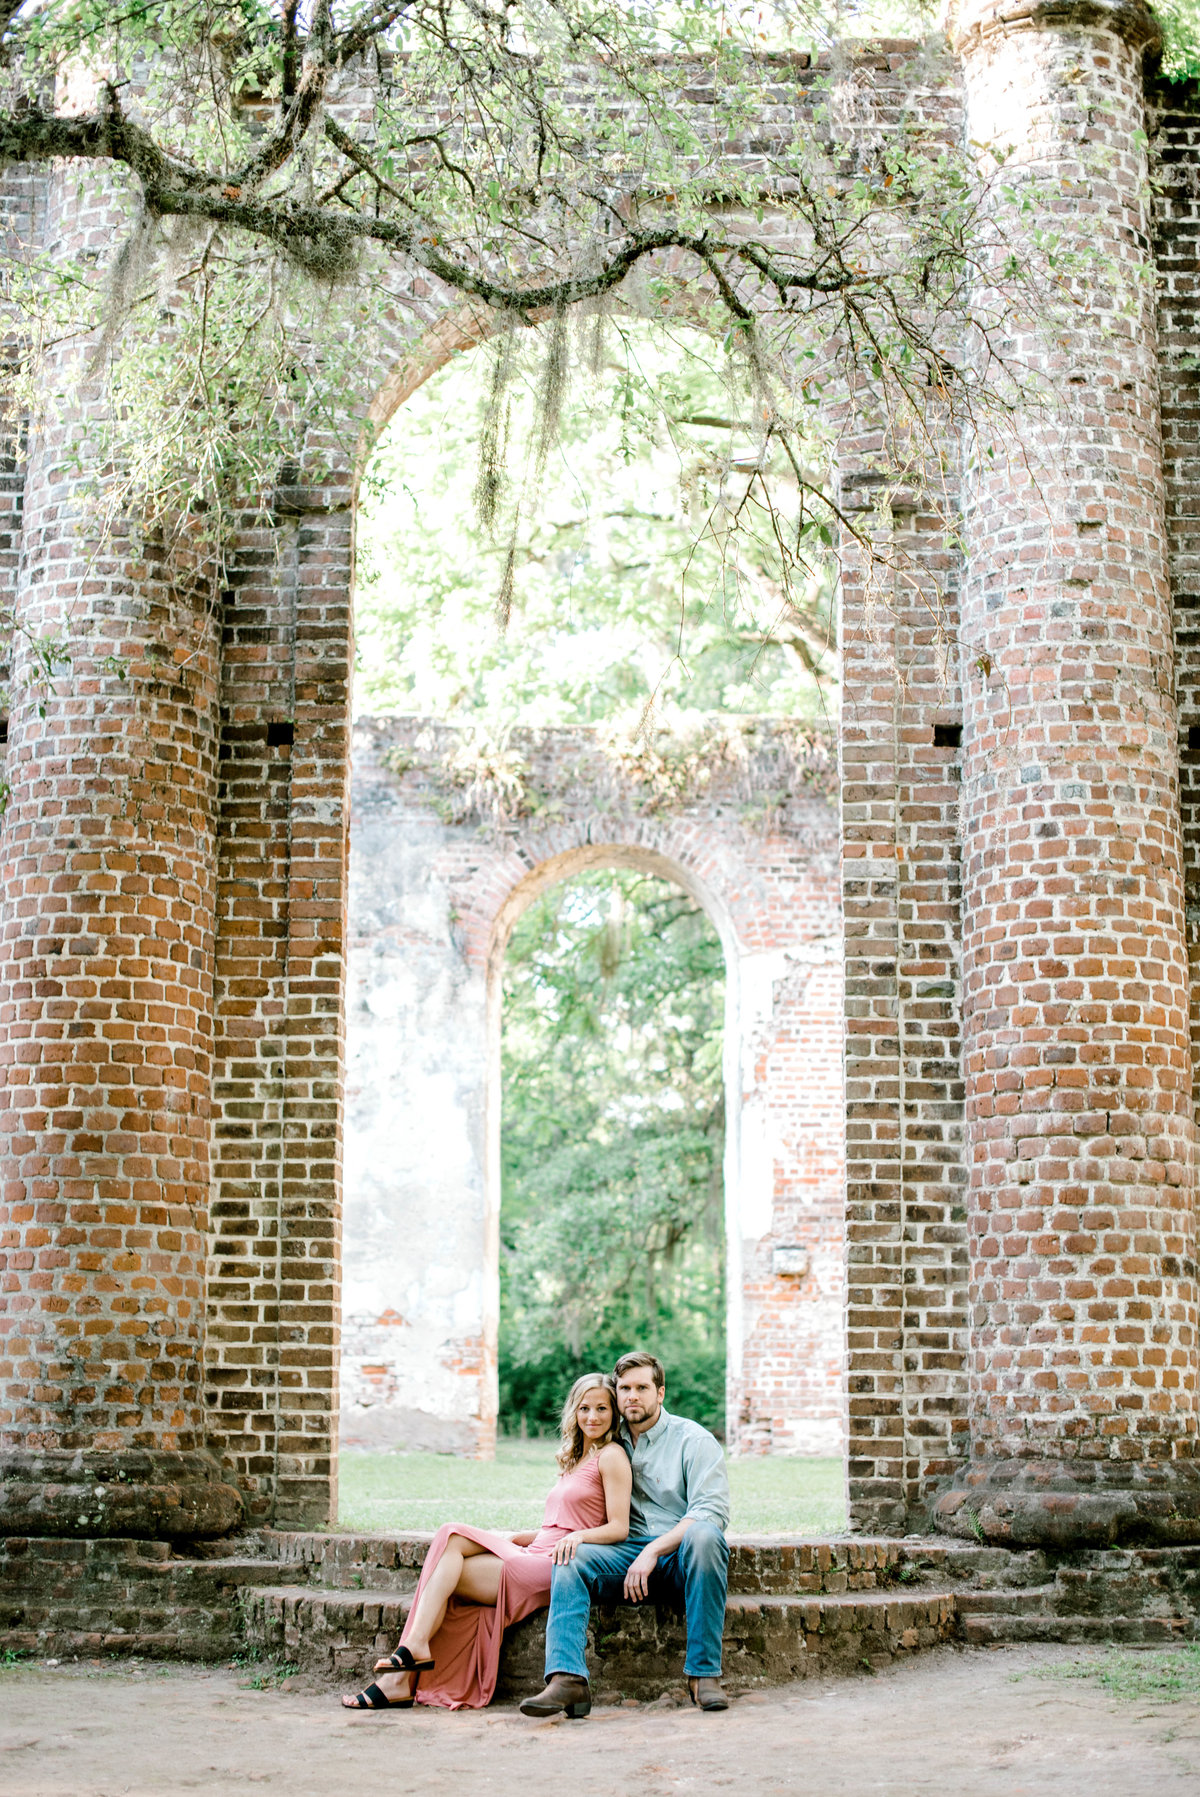 Couple sitting on church ruins